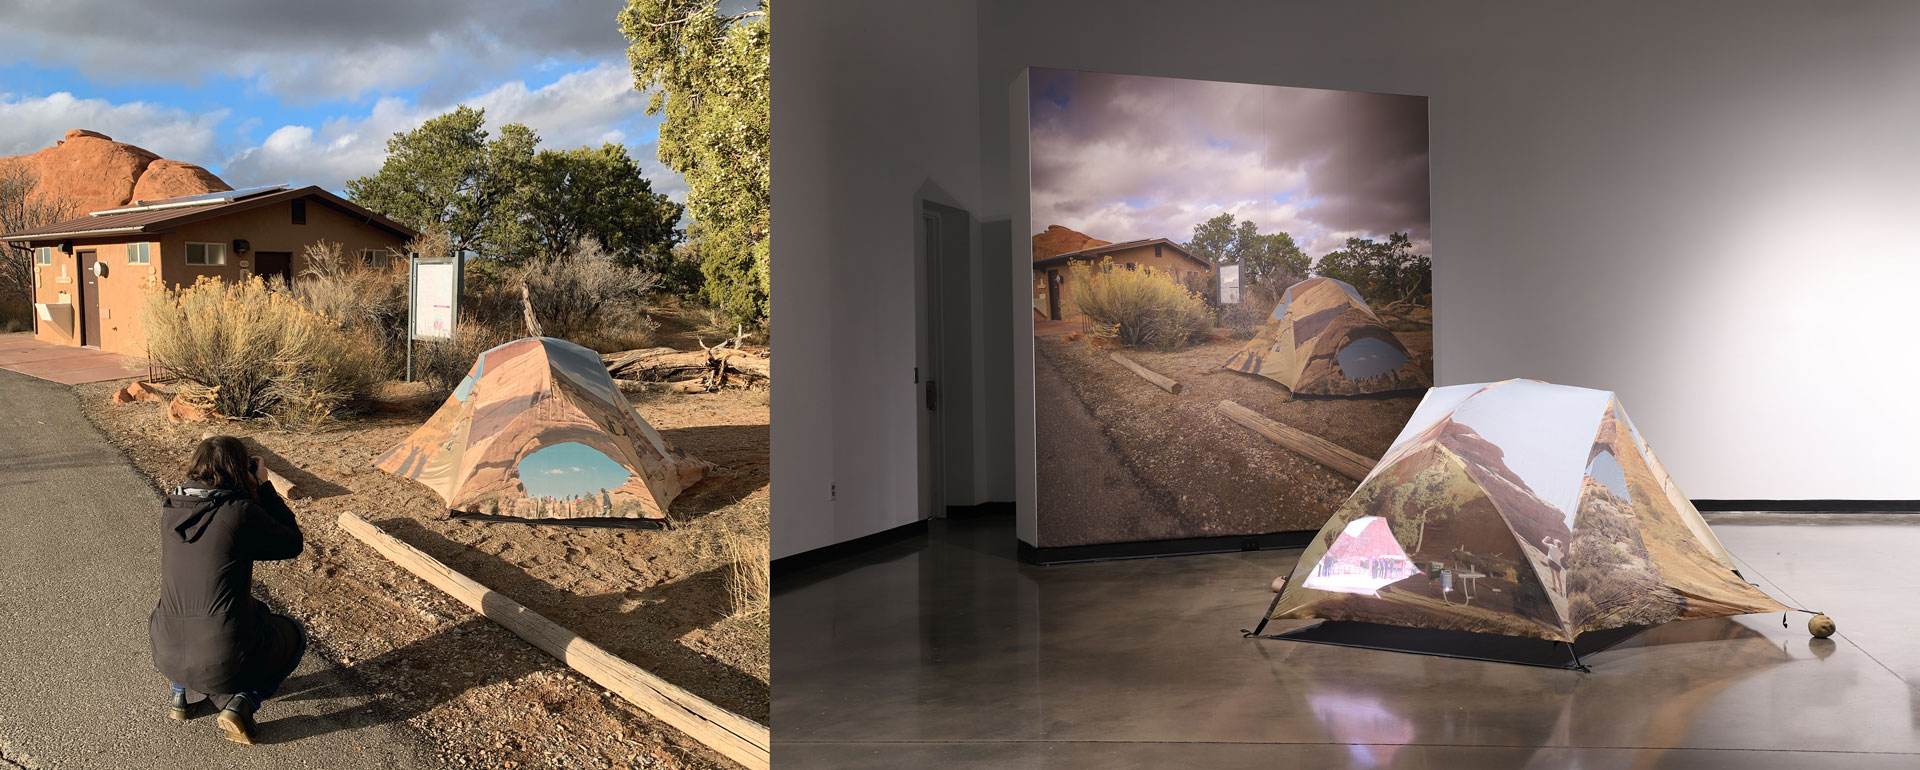 Katie Hargrave and Meredith Lynn The Arches tent in situ (left) and installed at The New Gallery at Austin Peay State University (right)